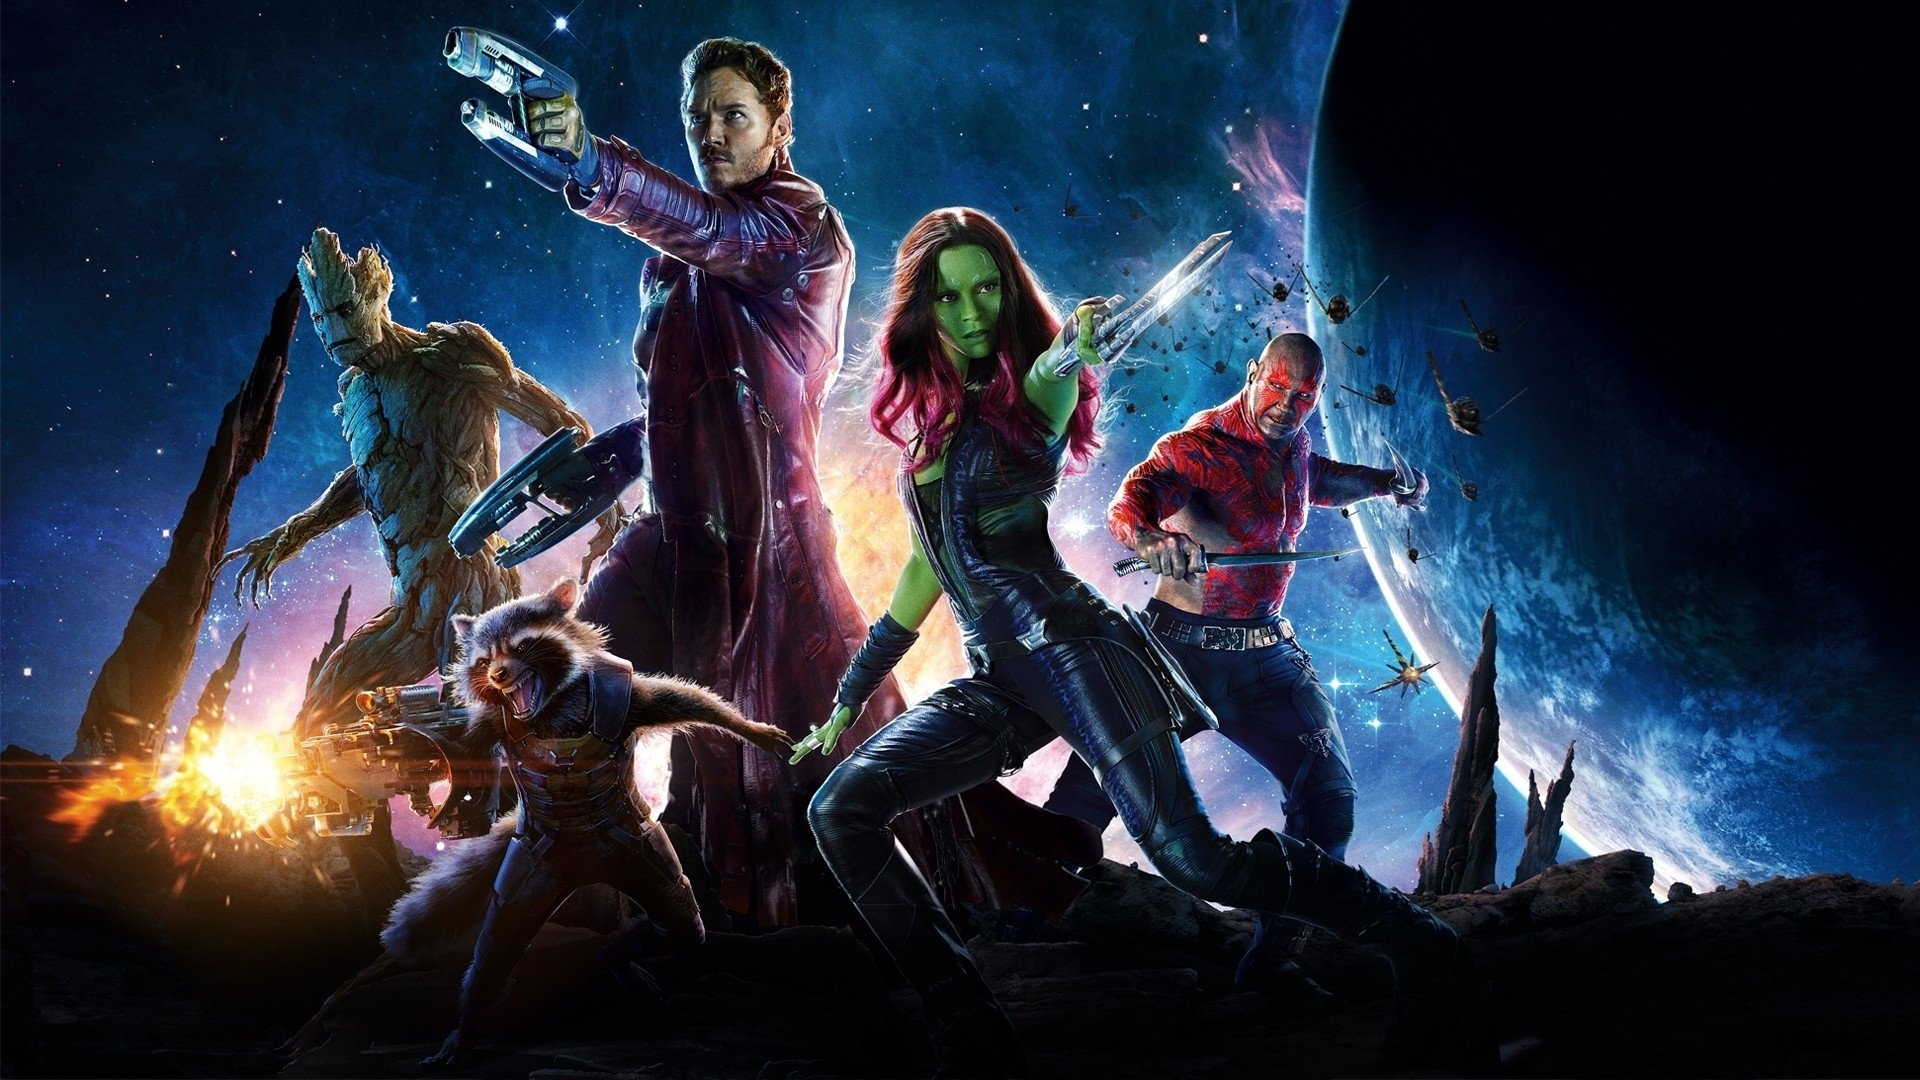 10 Top Guardians Of The Galaxy Backgrounds FULL HD 1920×1080 For PC Desktop